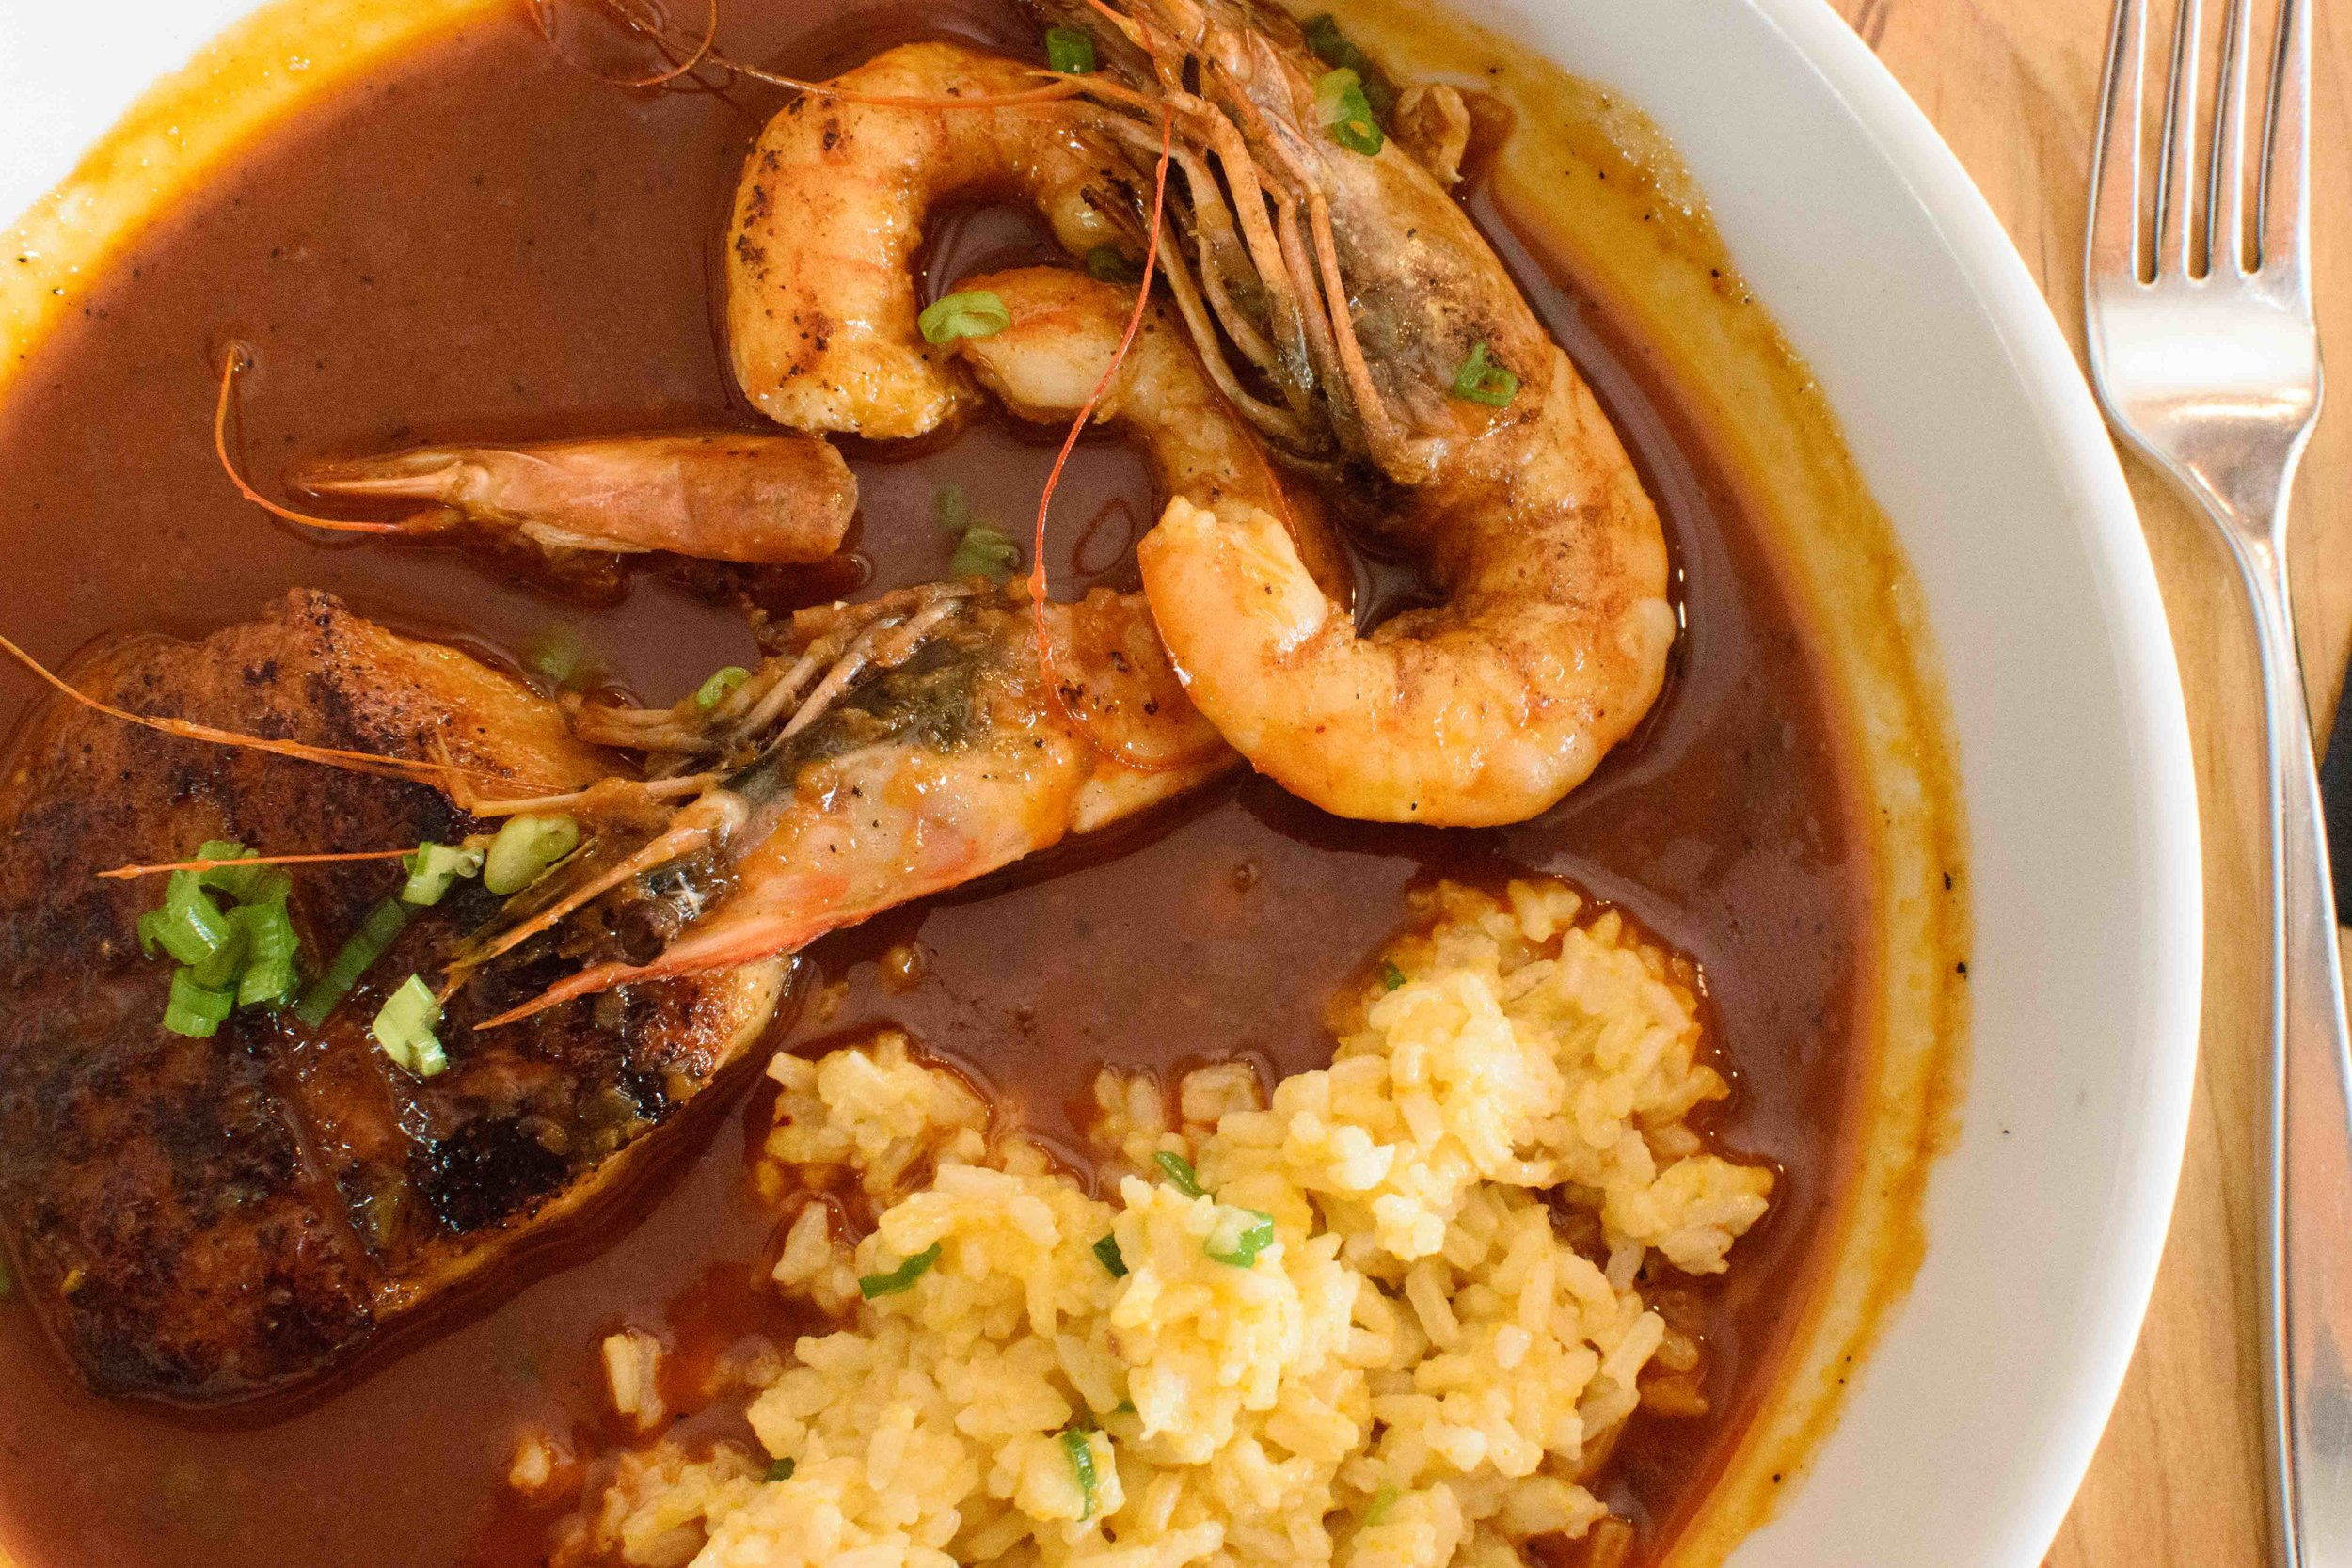 gulf seafood couvillion new orleans toups meatery cajun cuisine what to eat in nola